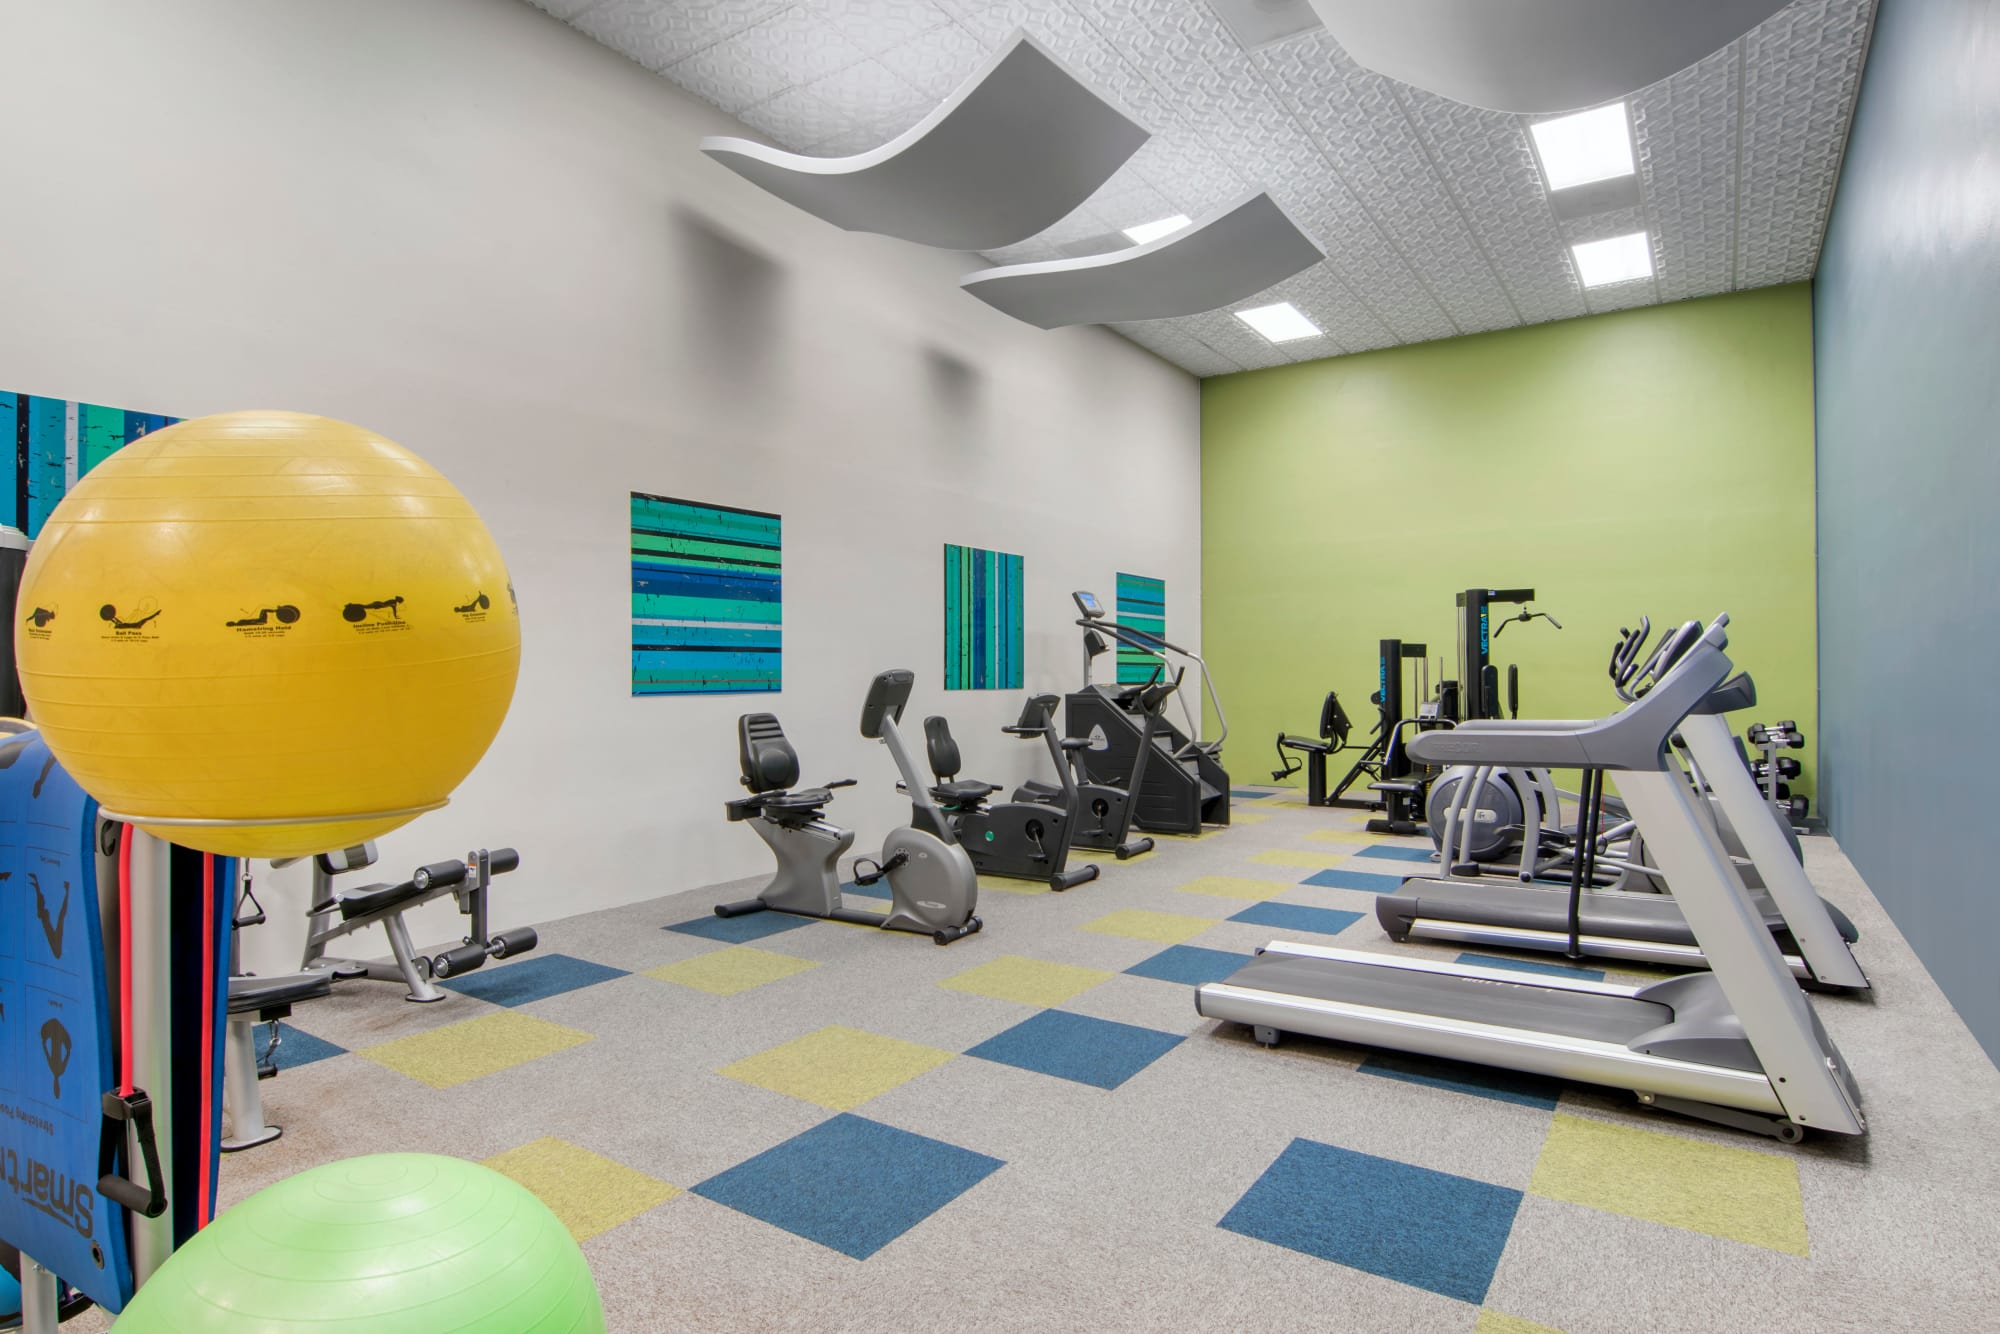 The fully equipped fitness center at Autumn Chase Apartments in Vancouver, Washington